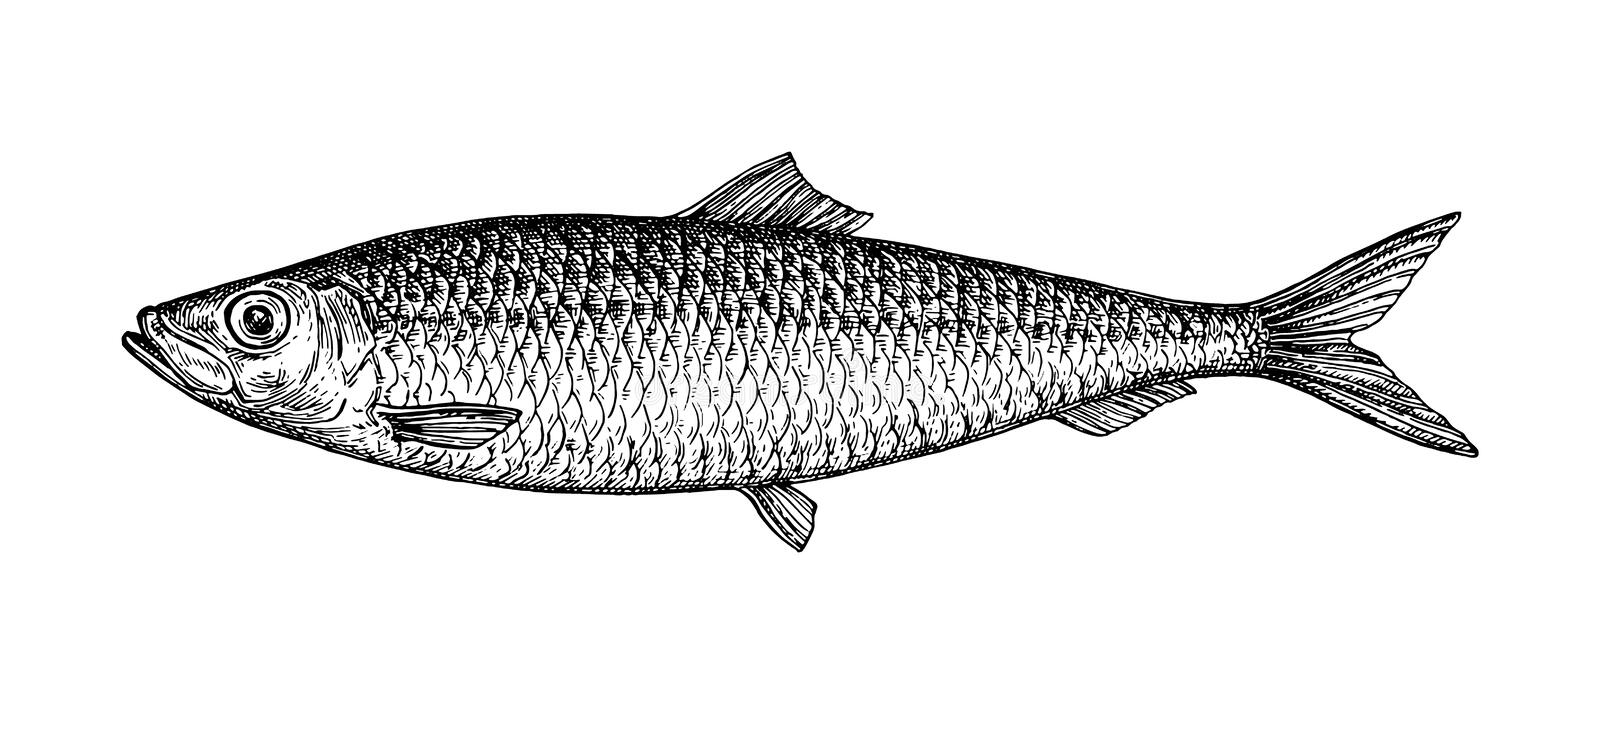 Ink sketch of herring. Hand drawn vector illustration of fish isolated on white background. Retro style royalty free illustration